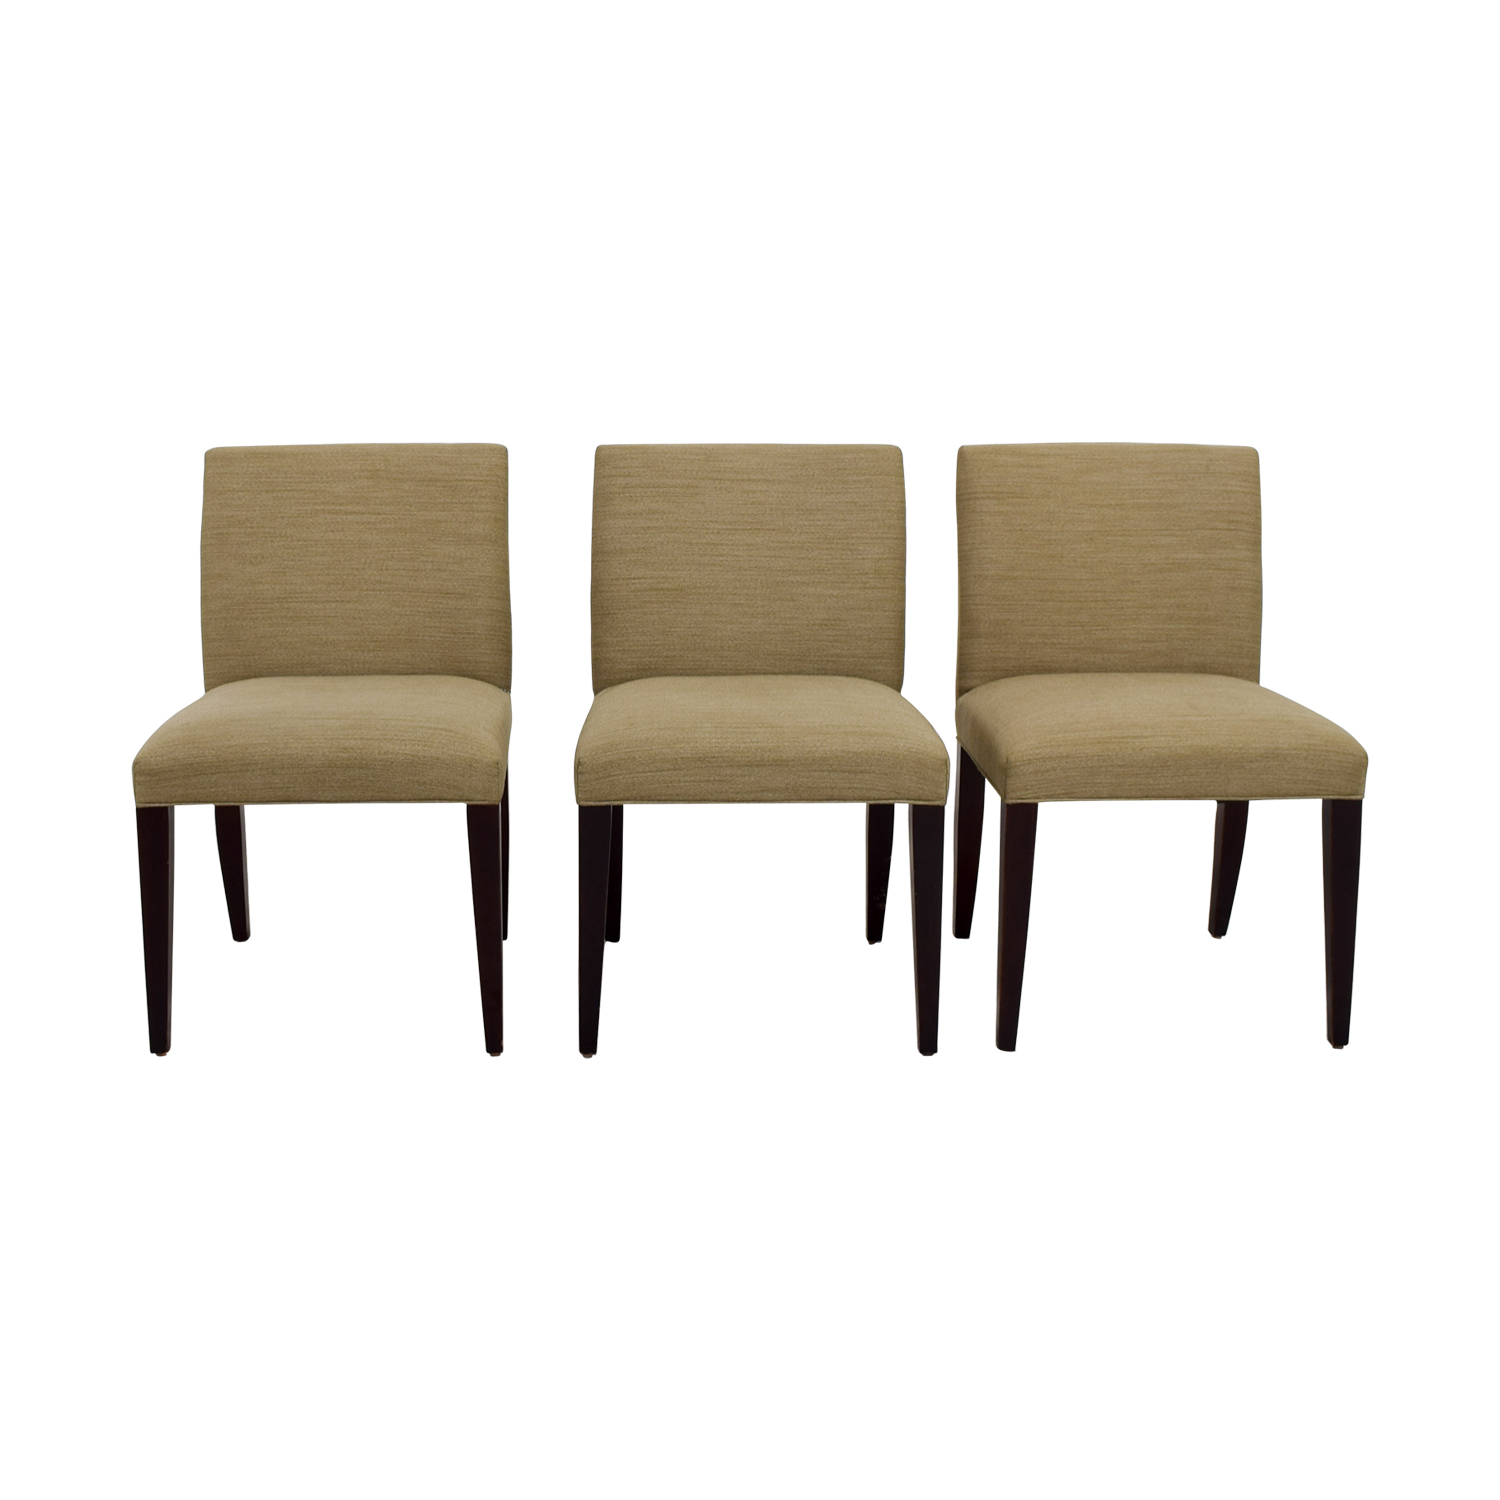 room and board chair ergo ball reviews 90 off marie tan side chairs